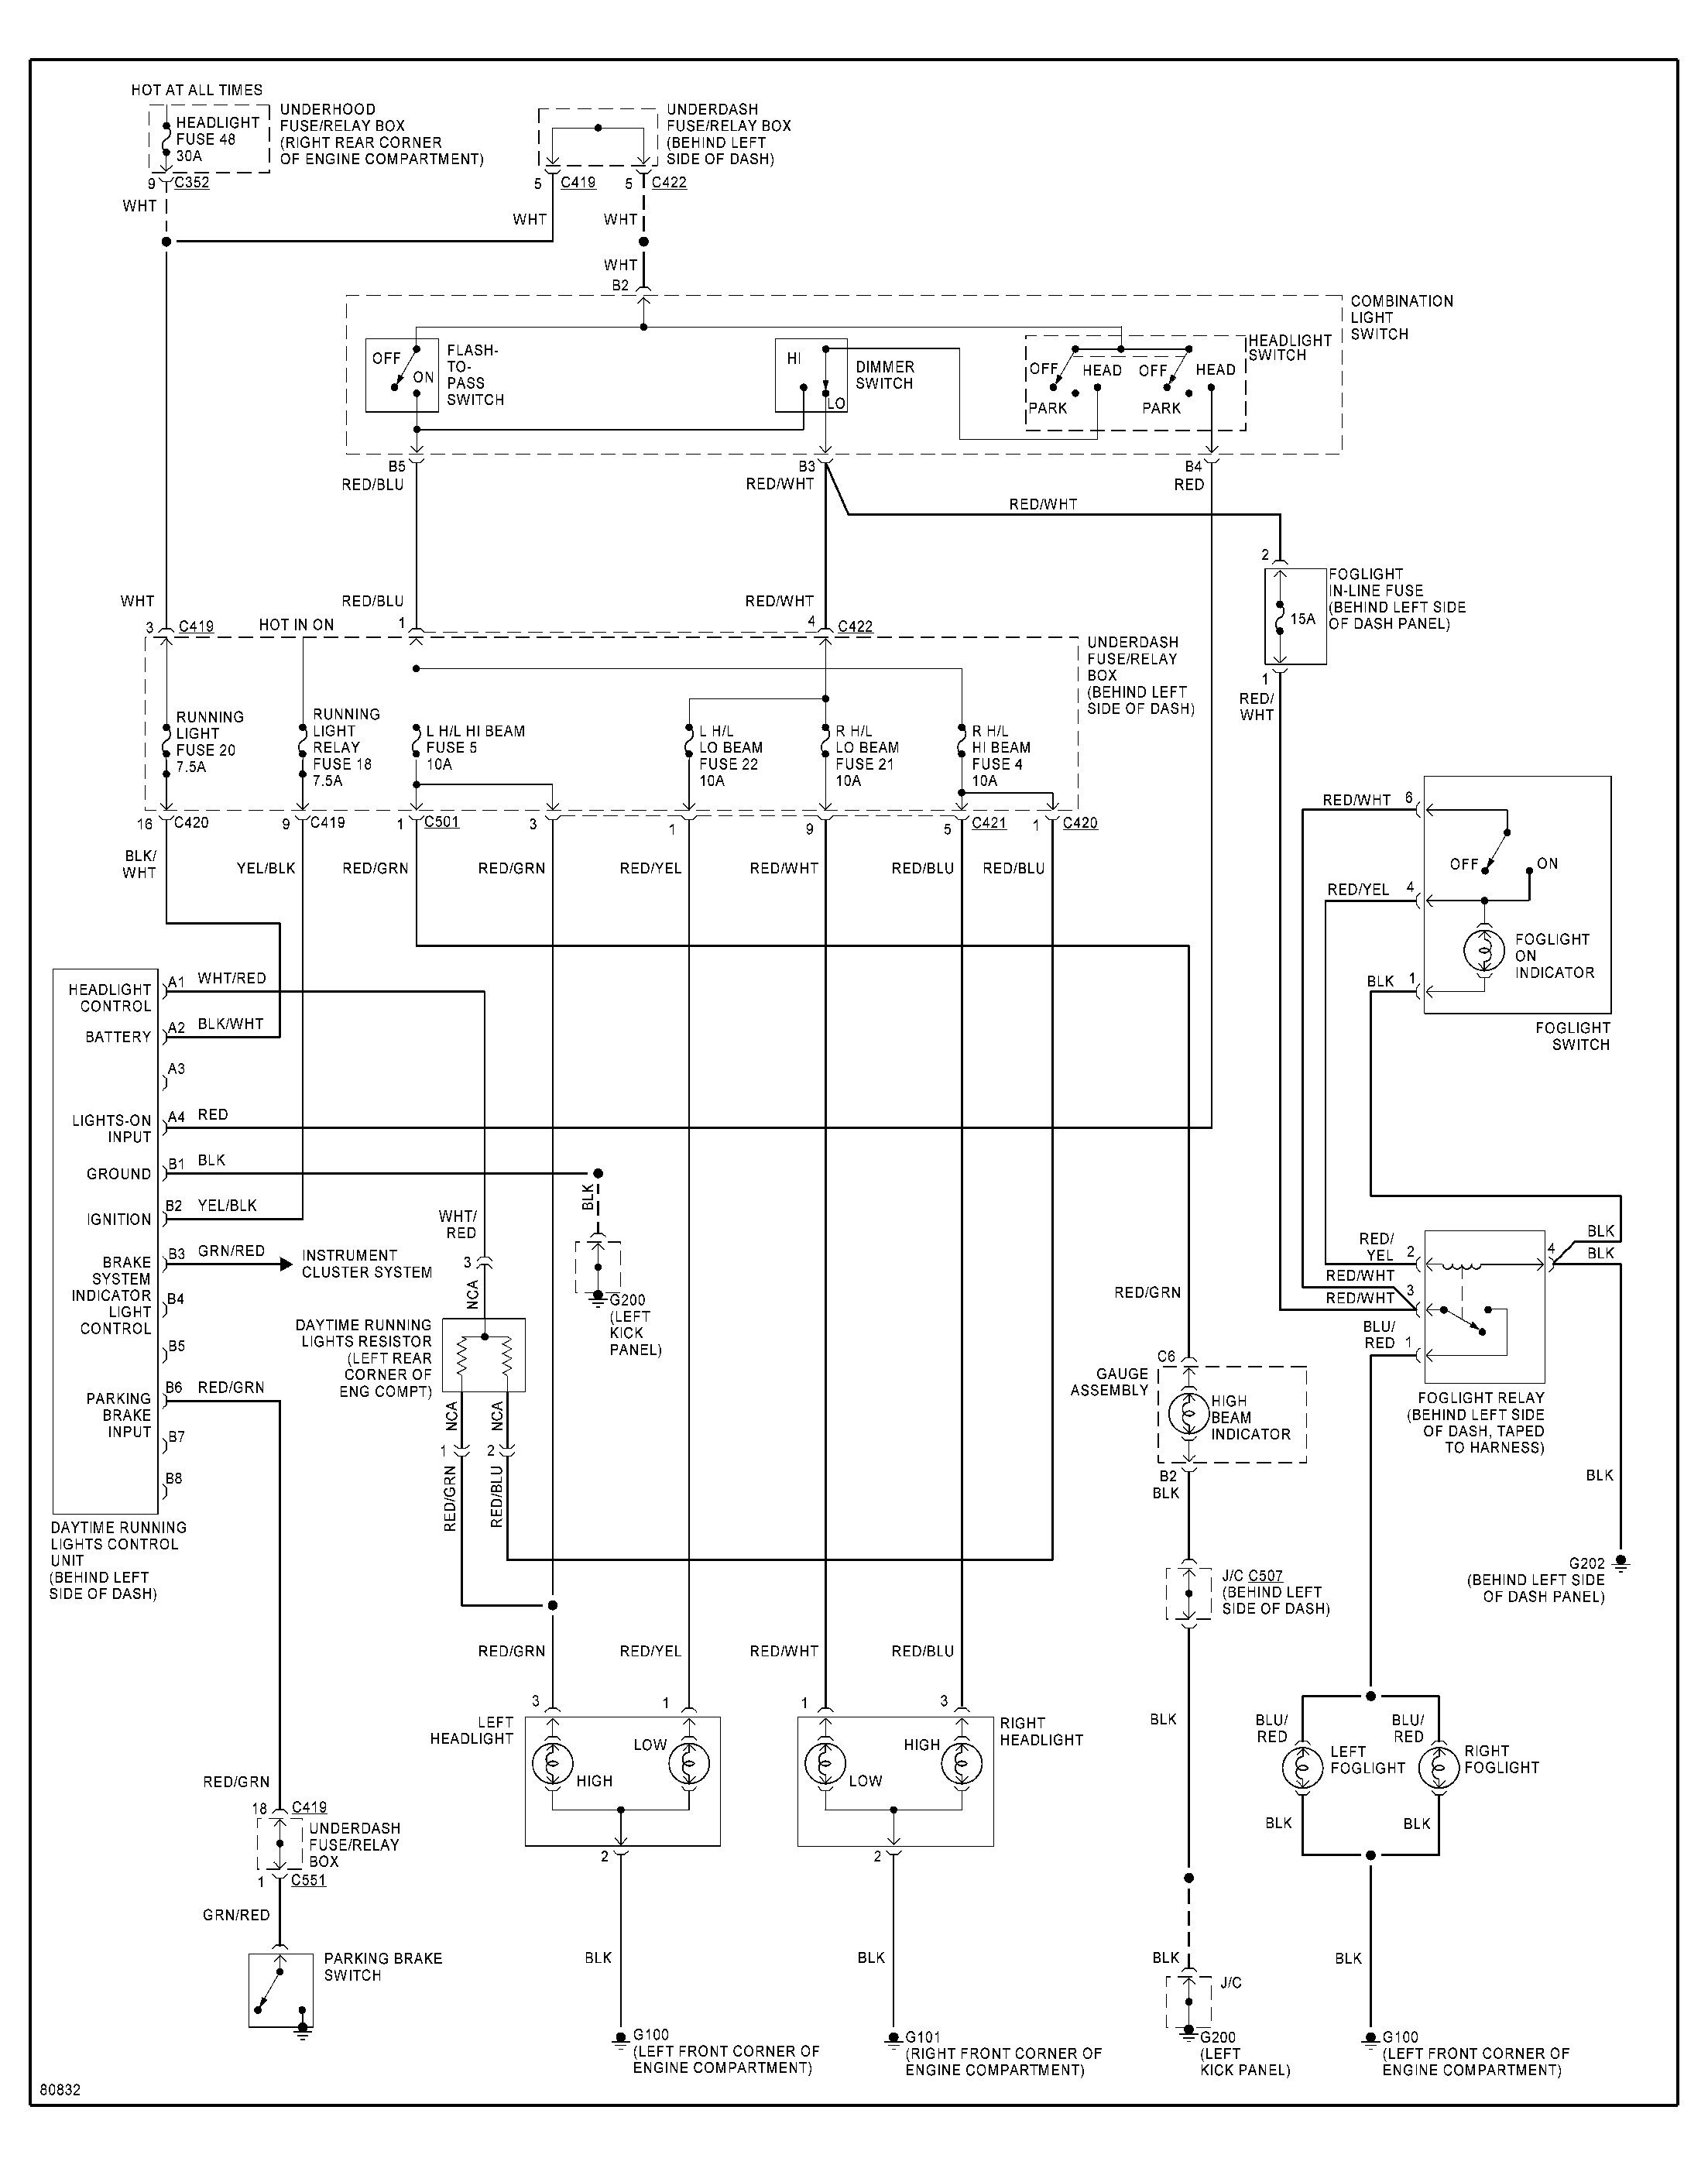 Honda Civik Ek Engine Wiring Diagram Honda Civik Honda Honda Civic